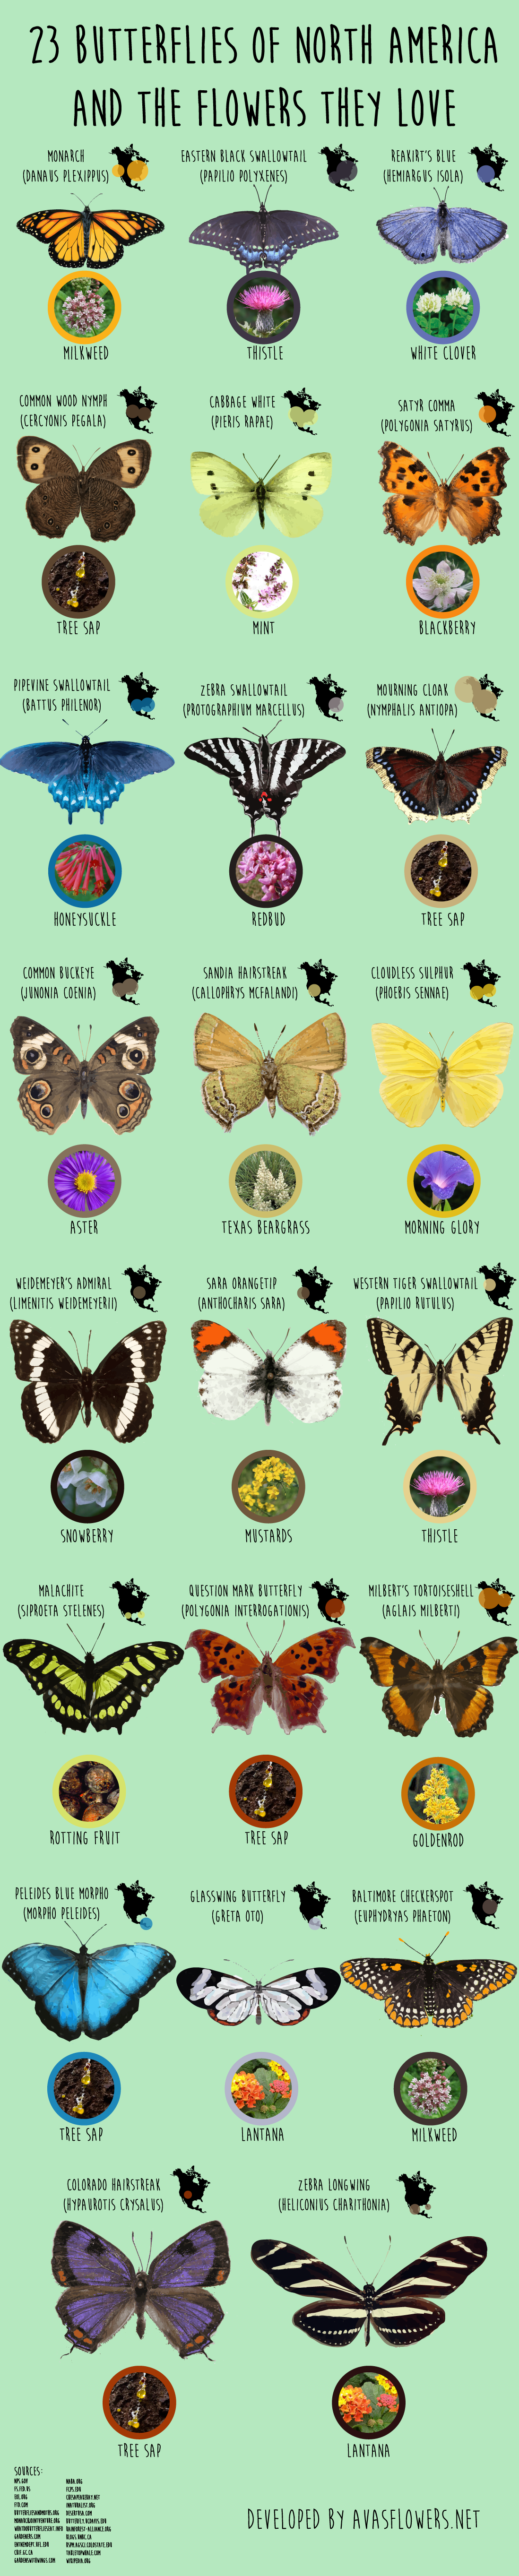 23 Butterflies of North America And the Flowers They Love - Avasflowers.net - Infographic